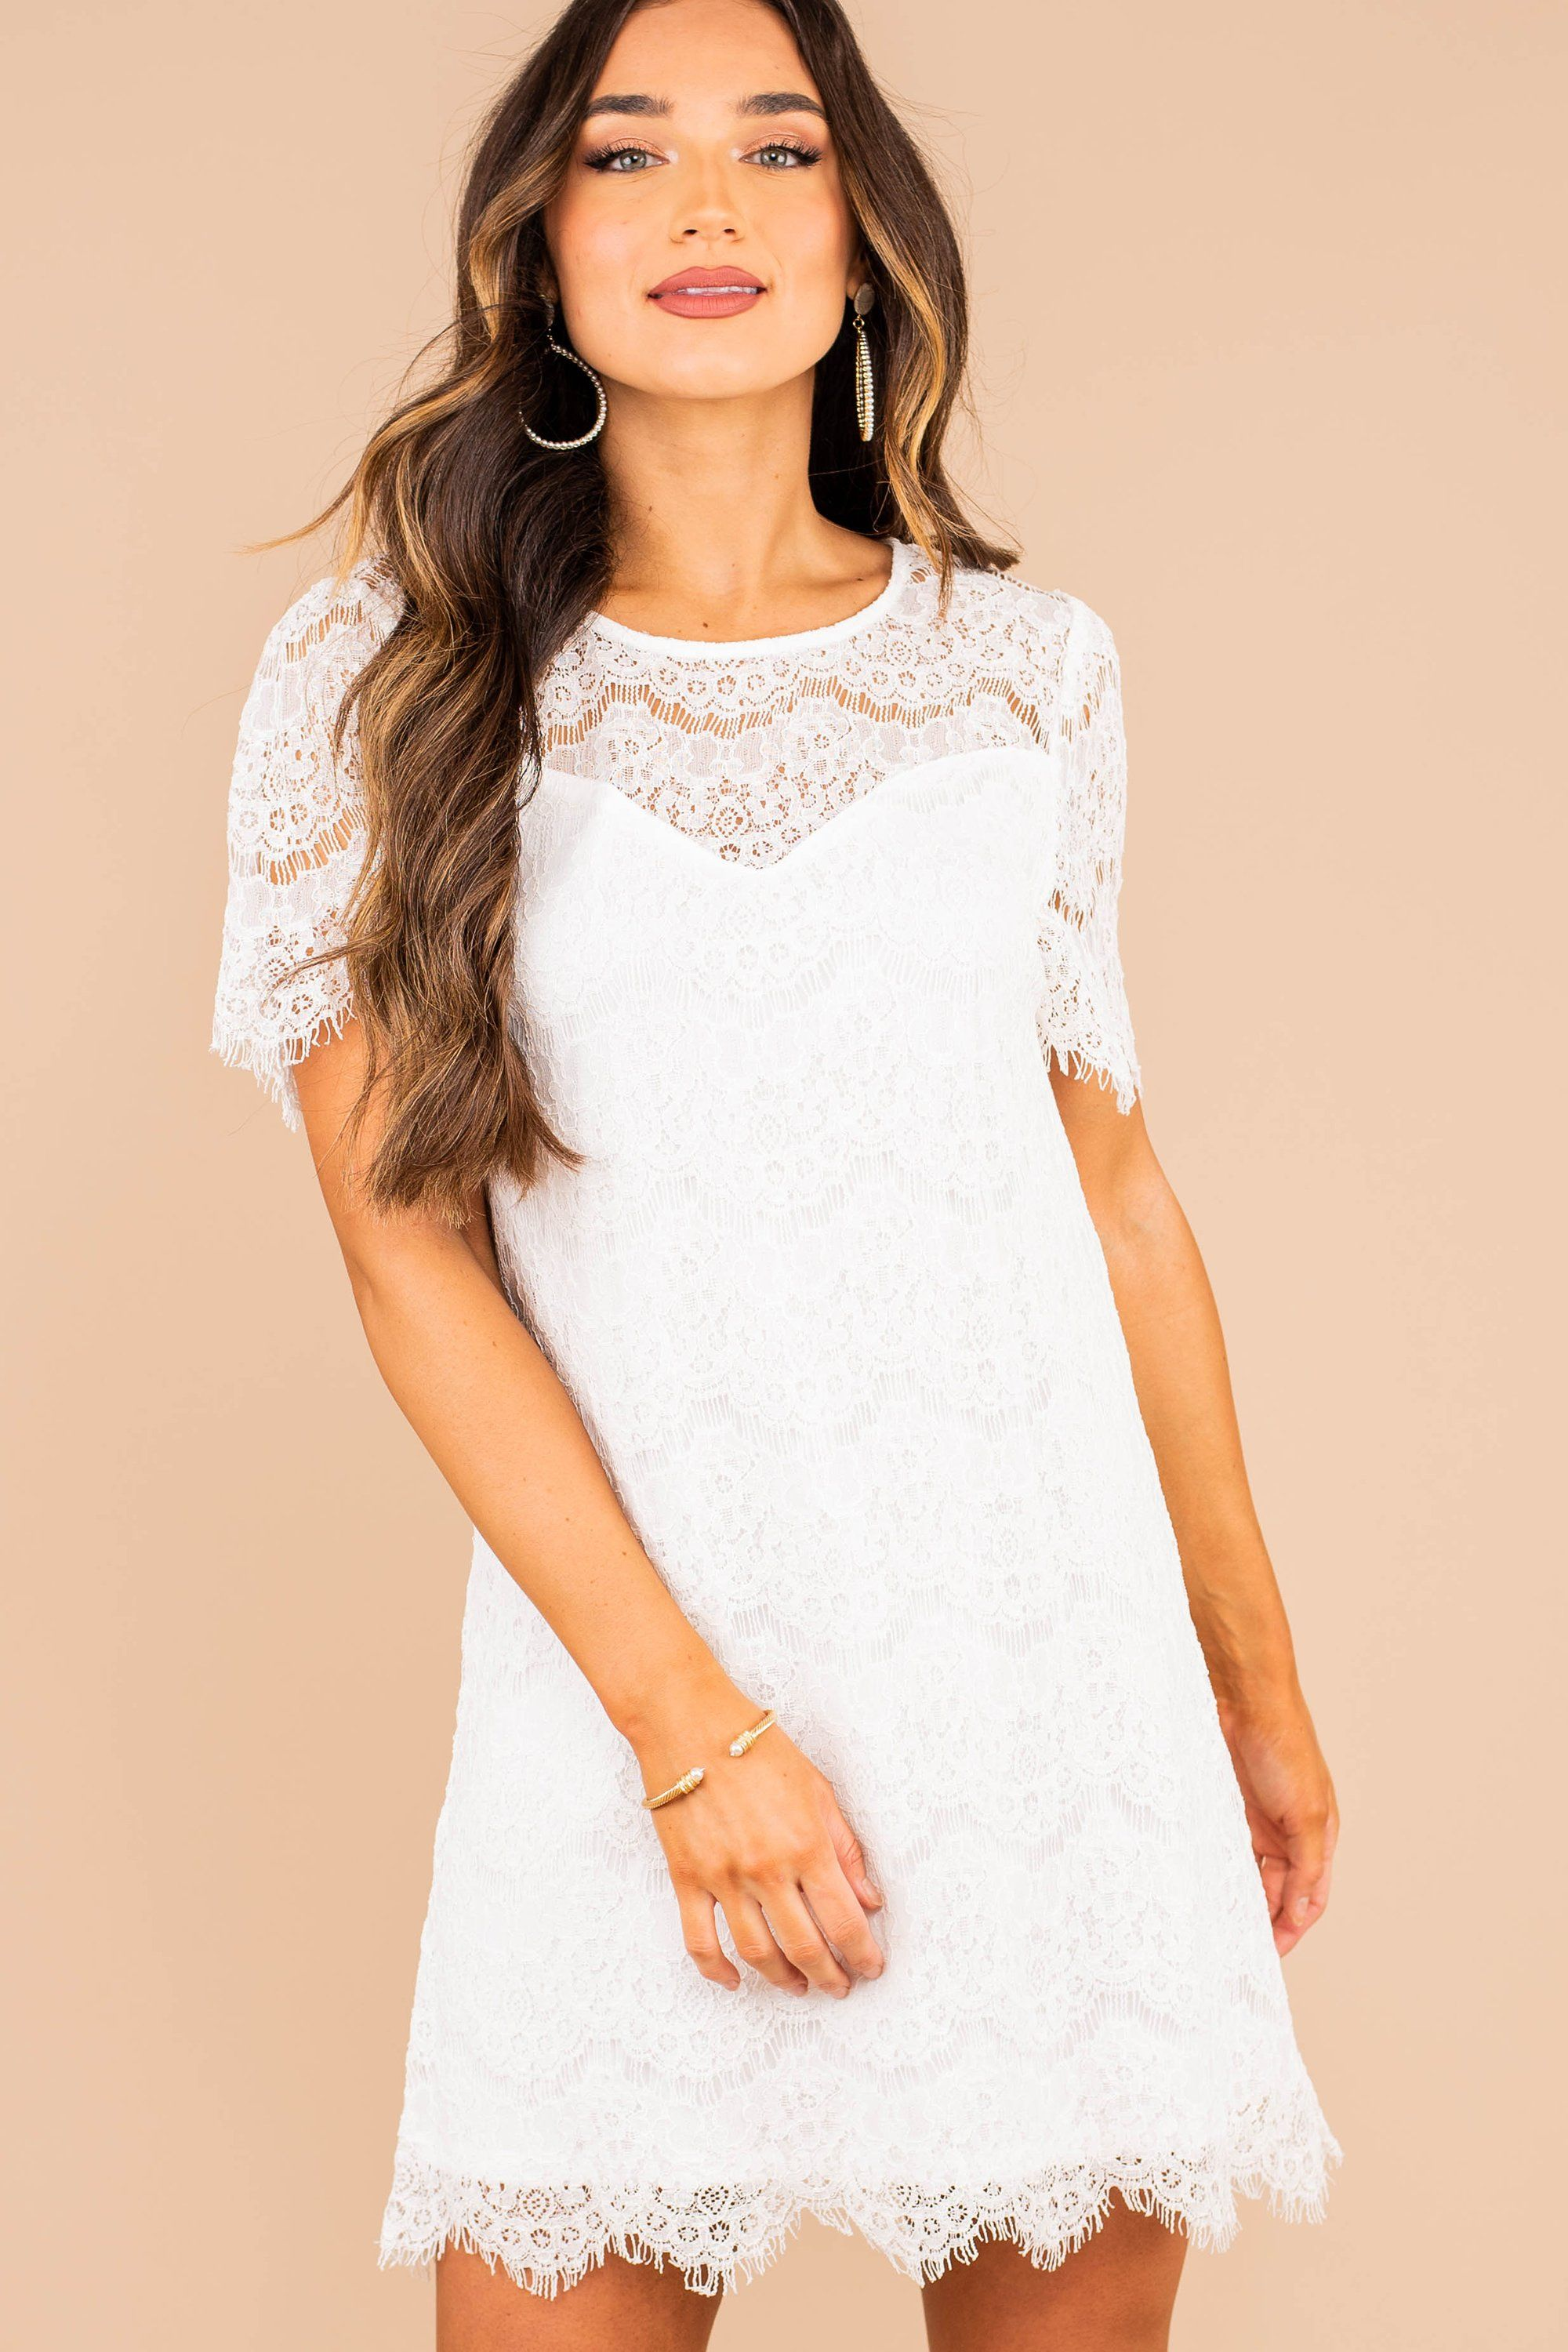 Stay Fabulous Off White Lace Dress Off White Lace Dress Dresses Lace White Dress [ 3000 x 2000 Pixel ]